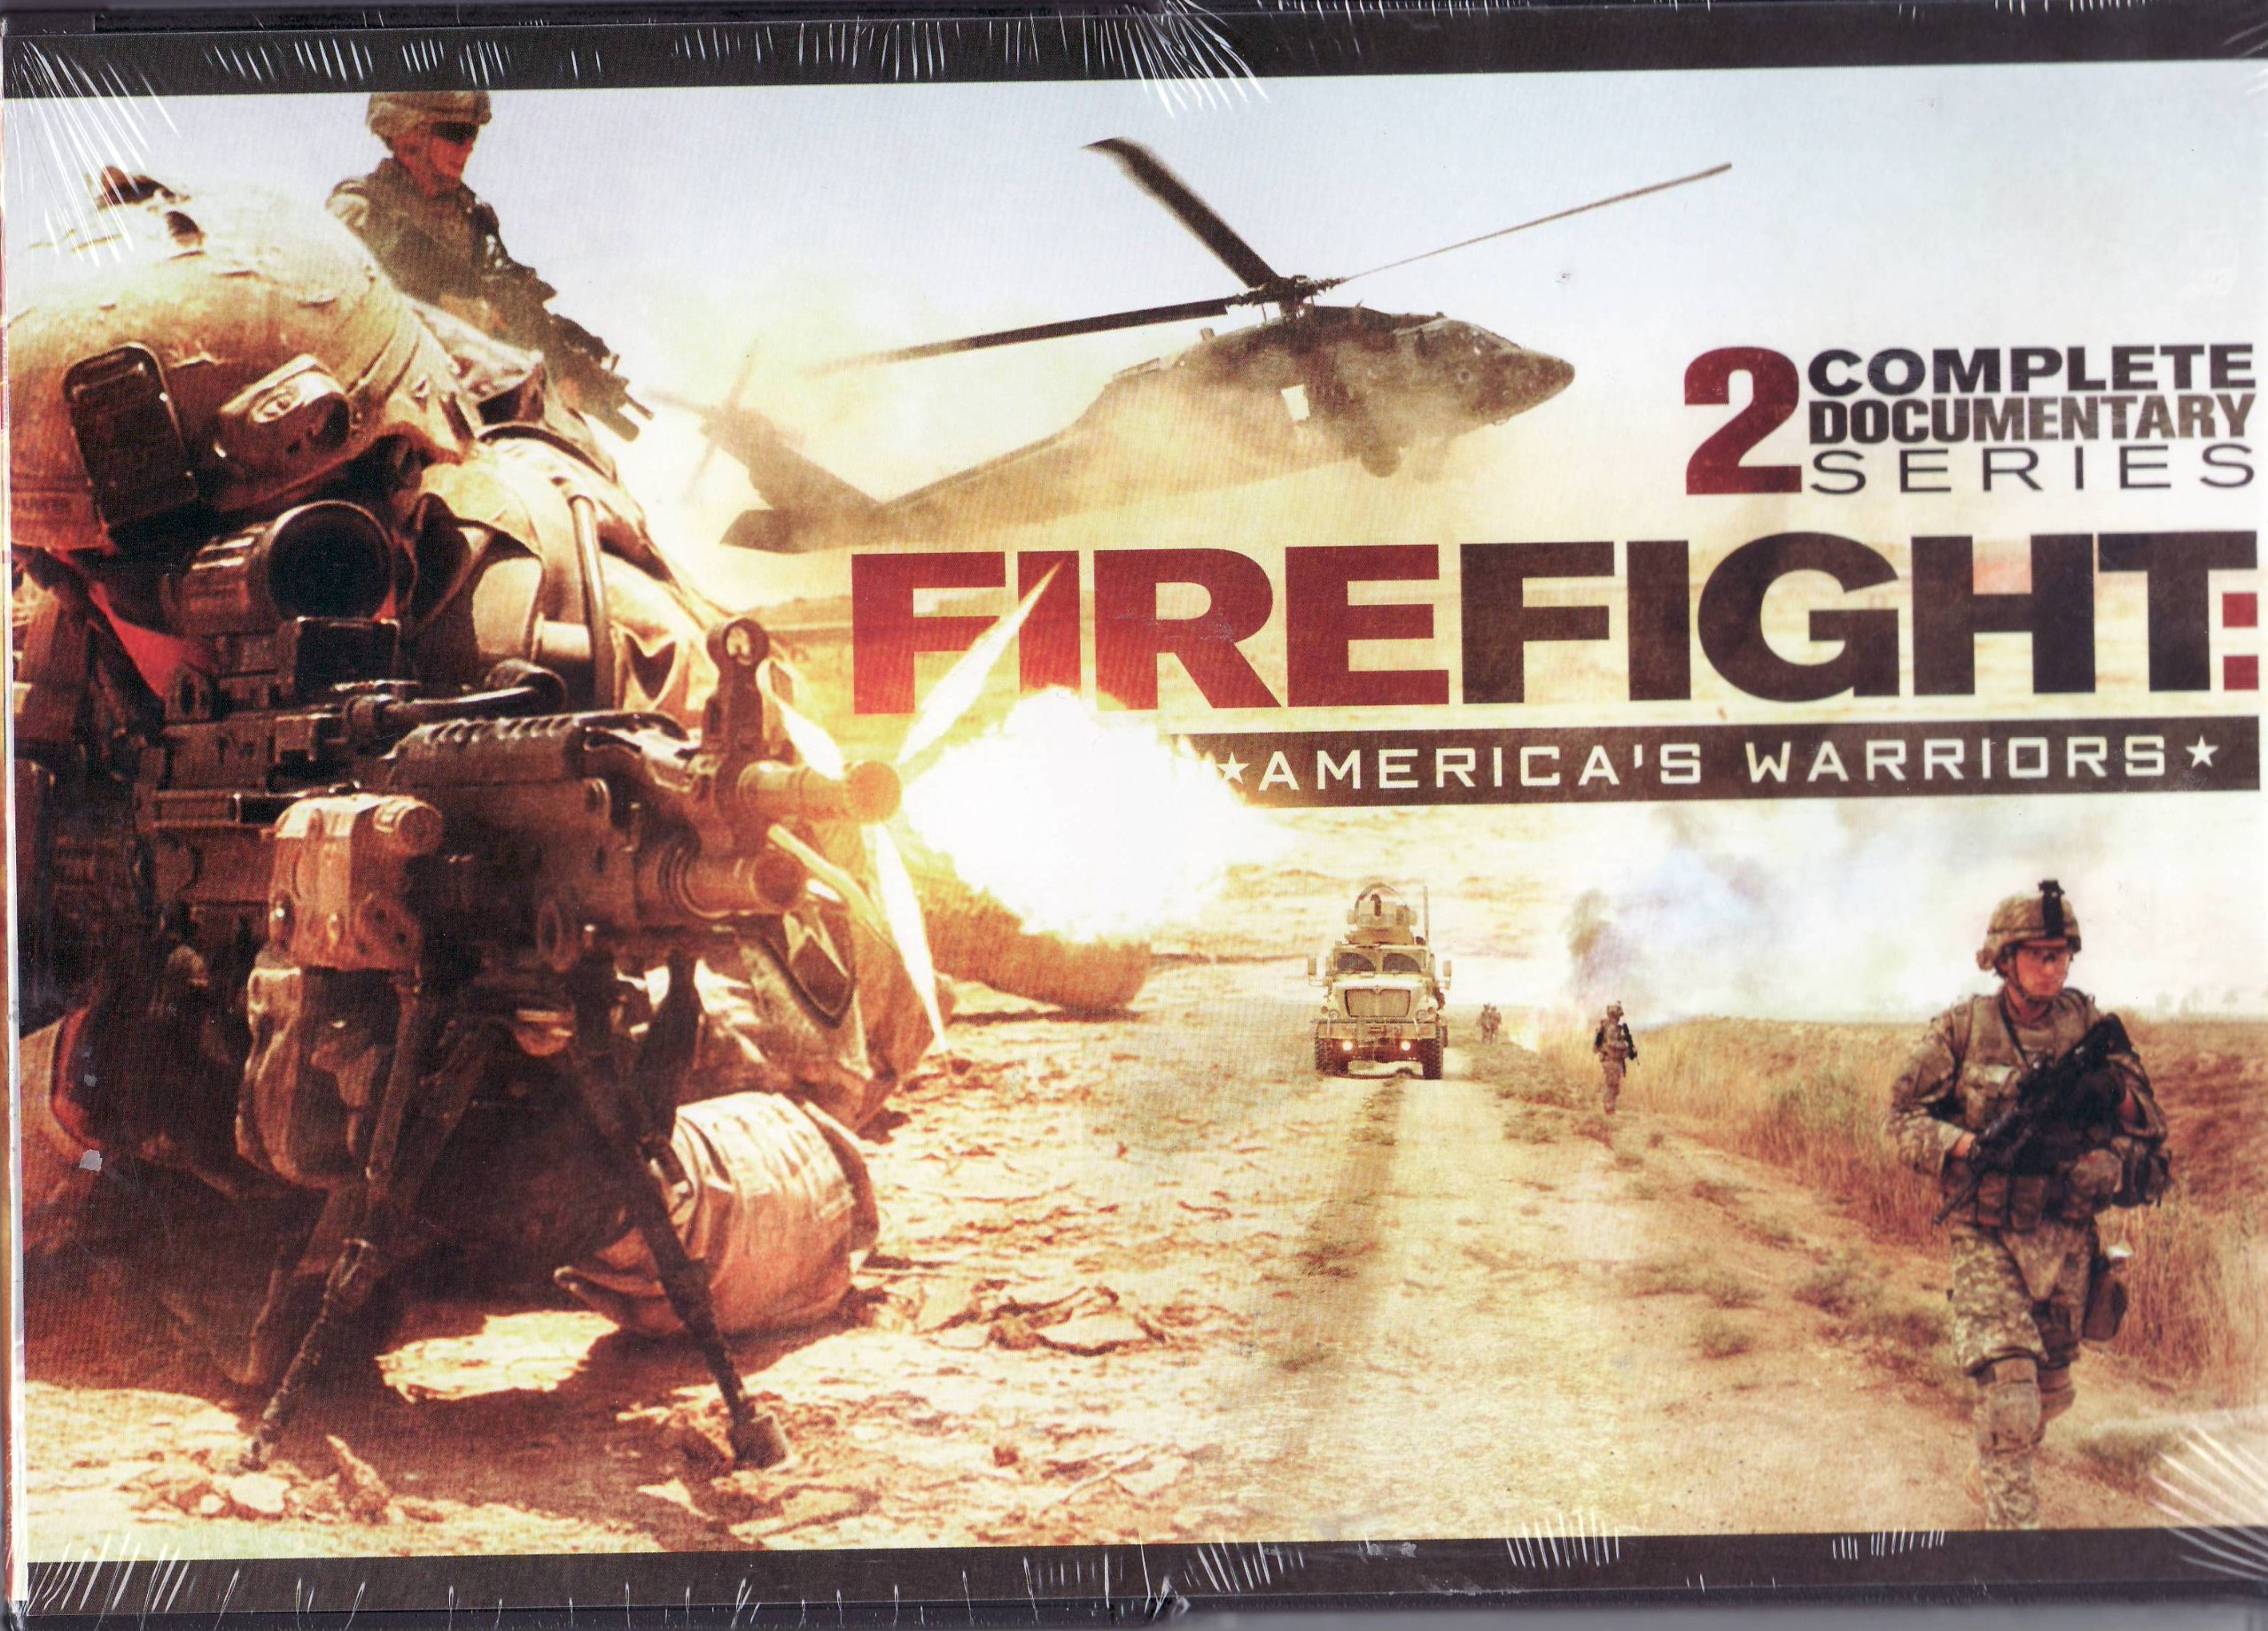 Firefight - America's Warriors - 2 Complete Documentary Series